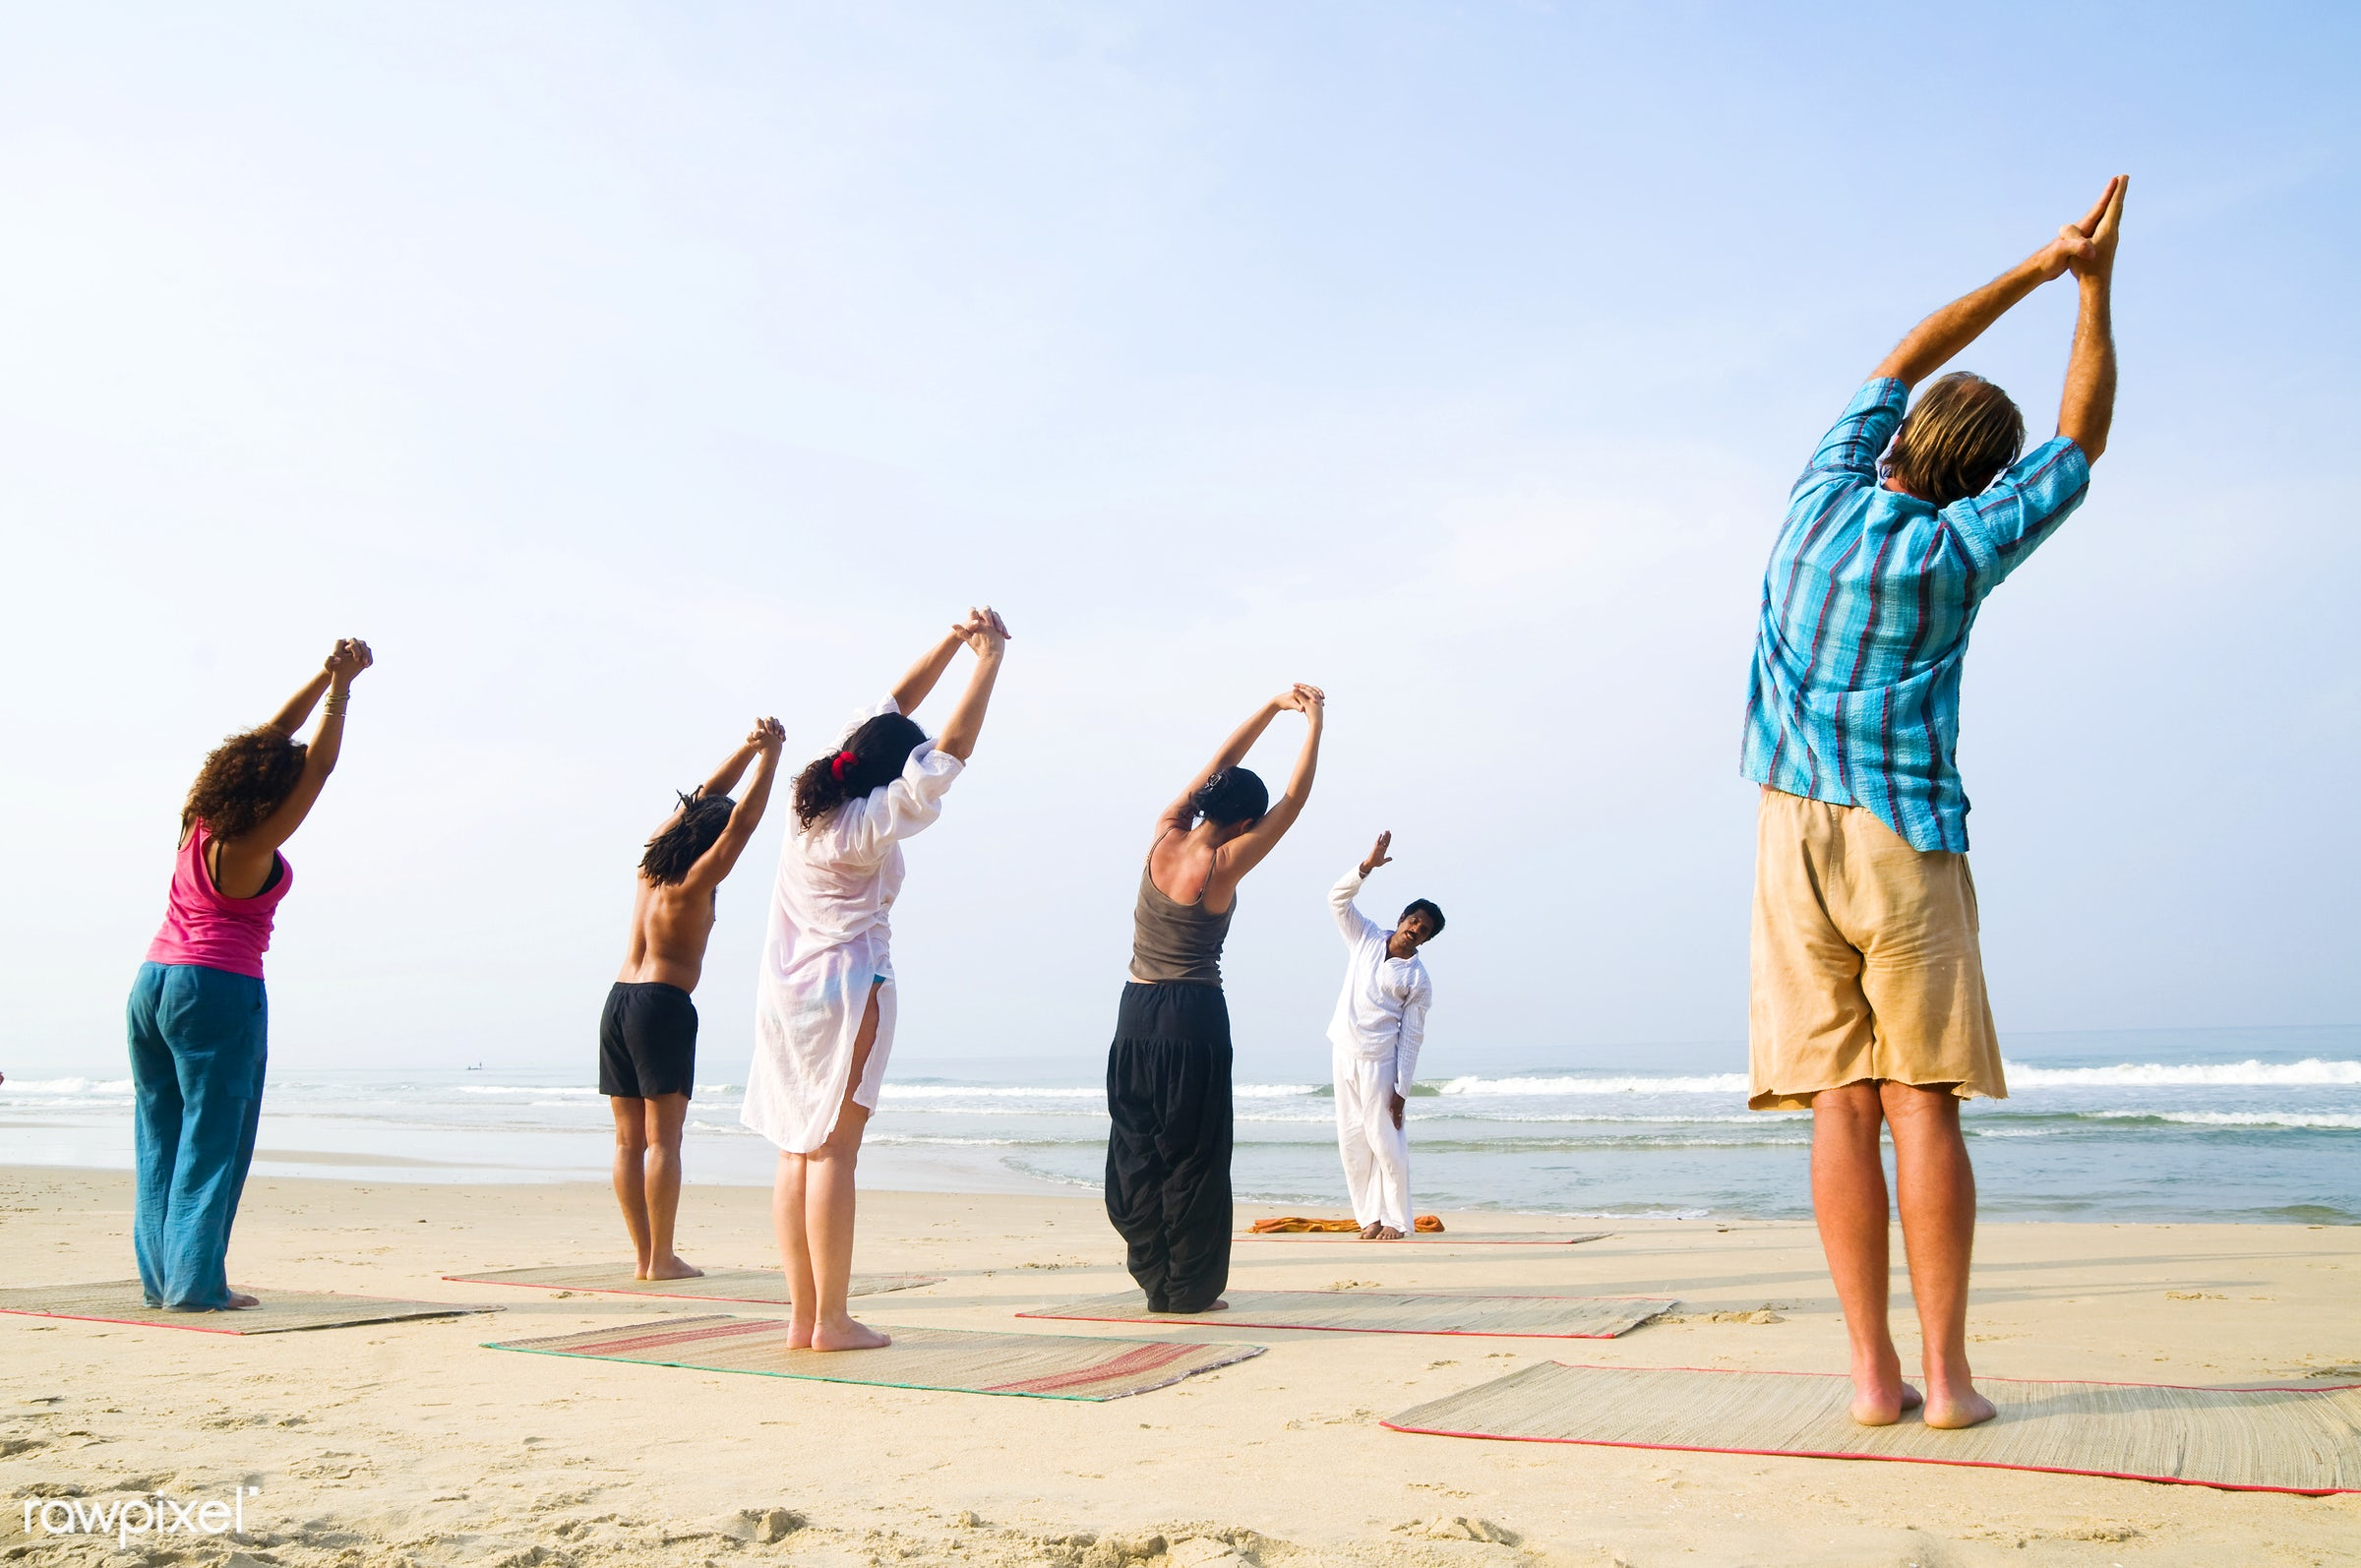 Yoga class at the beach - activity, adult, arms raised, beach, beauty in nature, body, body care, casual, class, coastline,...